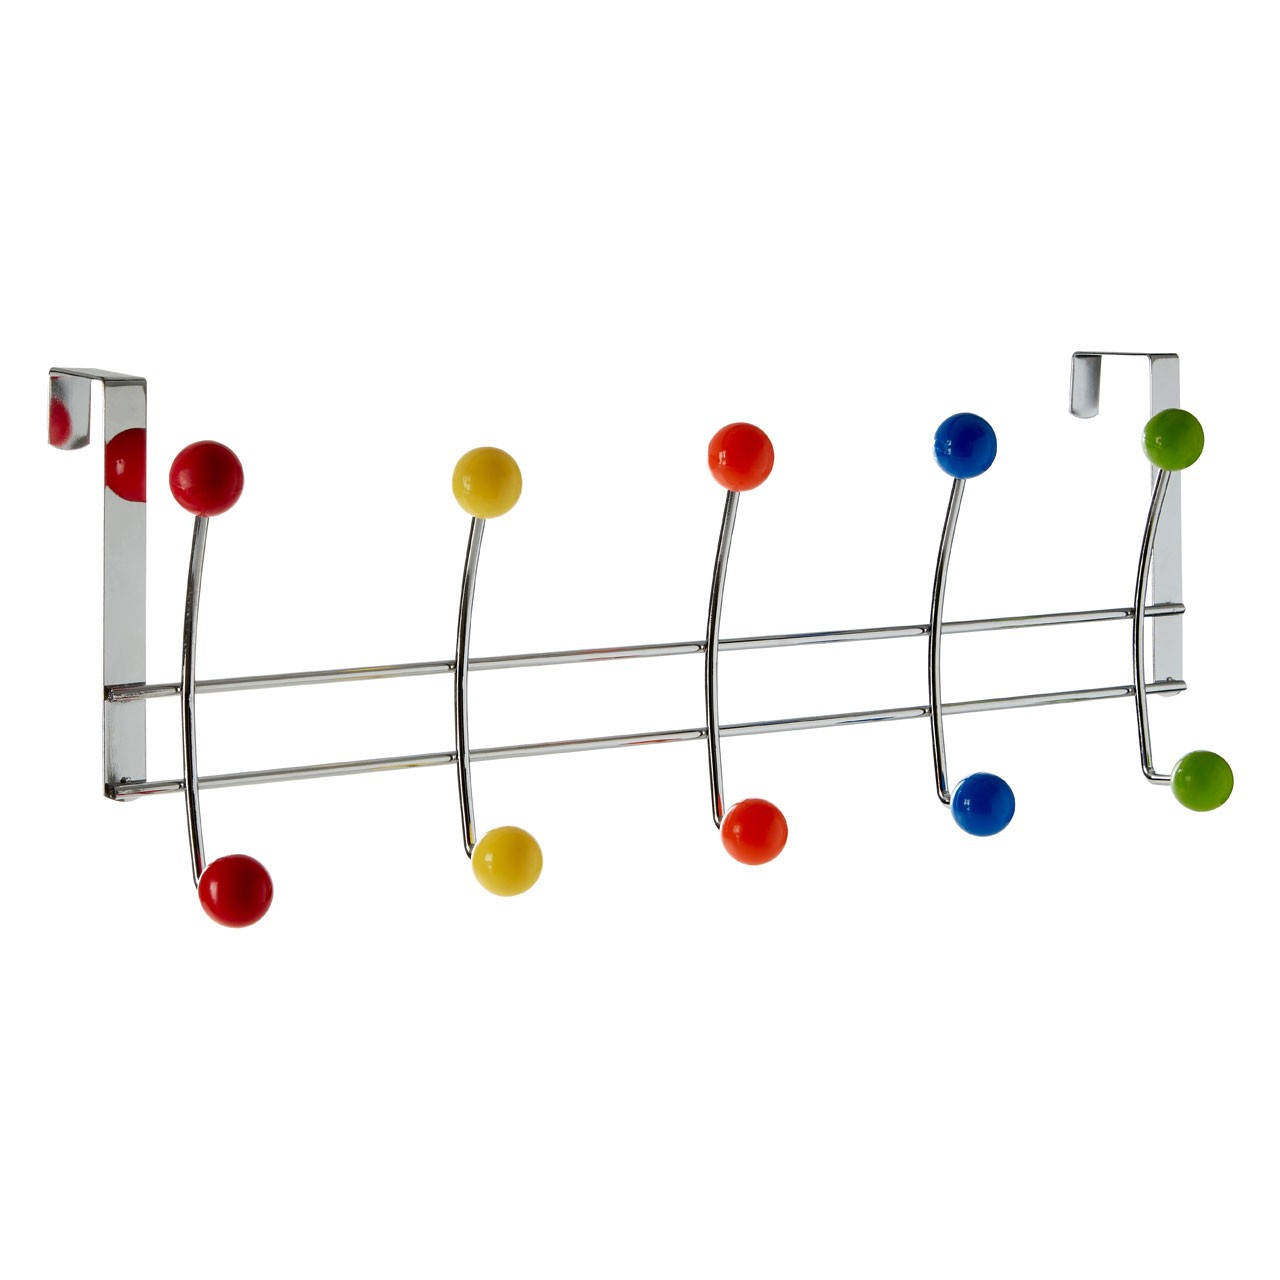 Prime Furnishing 10-Hook Over Door Hanger, Multi-Colour